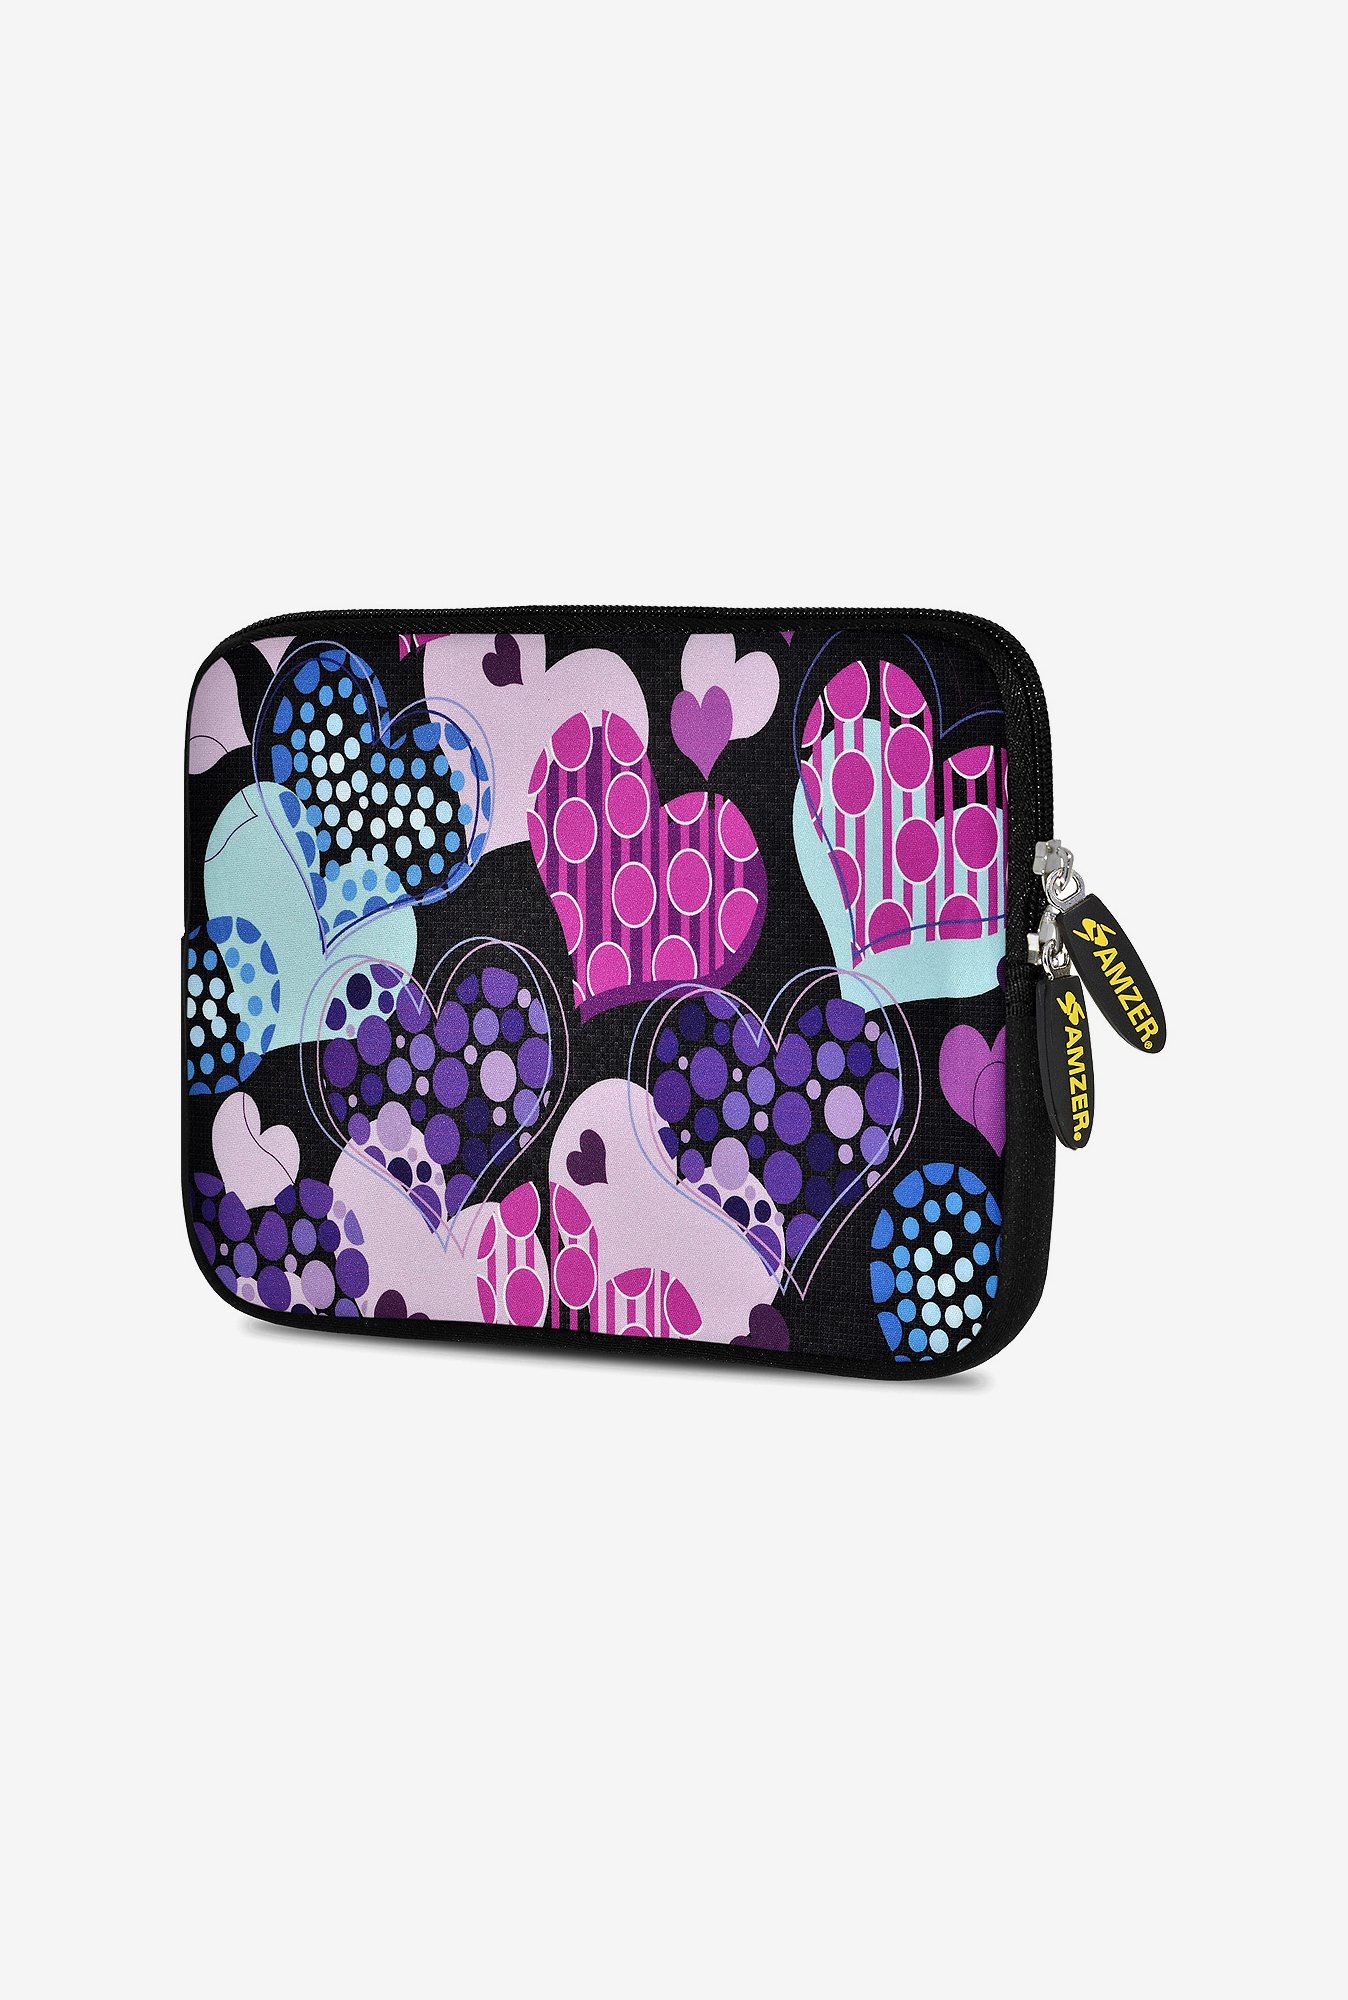 Amzer 7.75 Inch Neoprene Sleeve - Pattern Heart